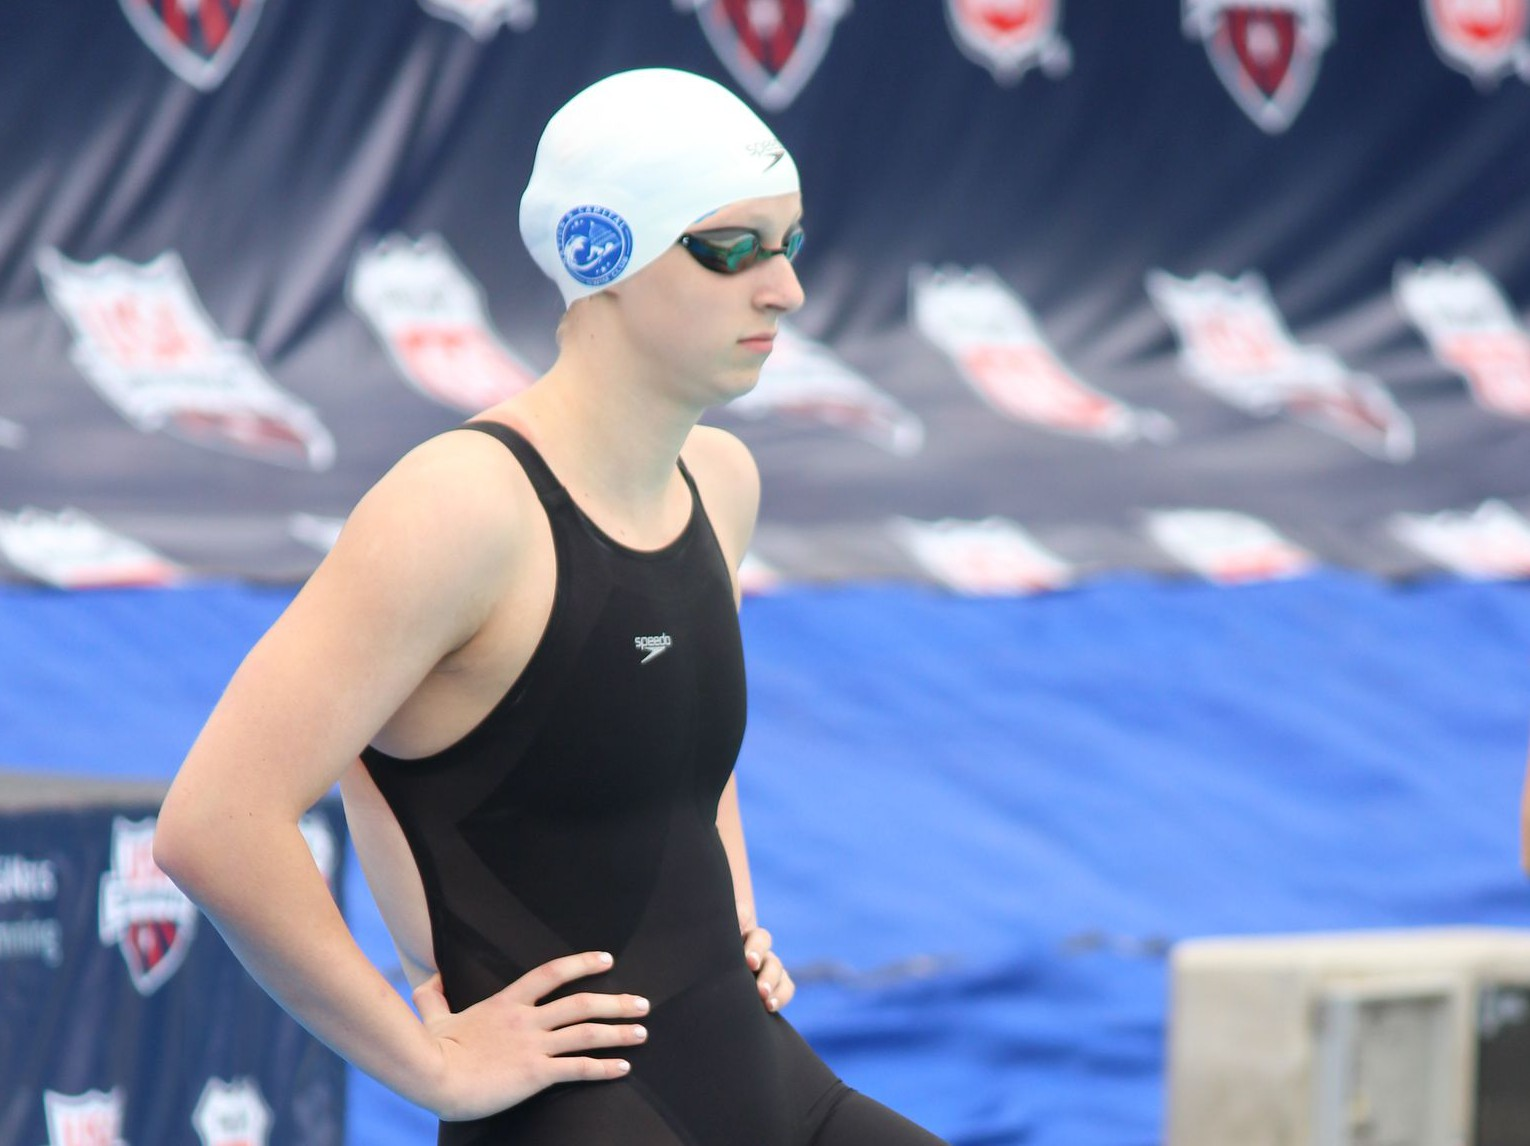 Usa swimming senior nationals results katie ledecky with - Dive recorder results ...